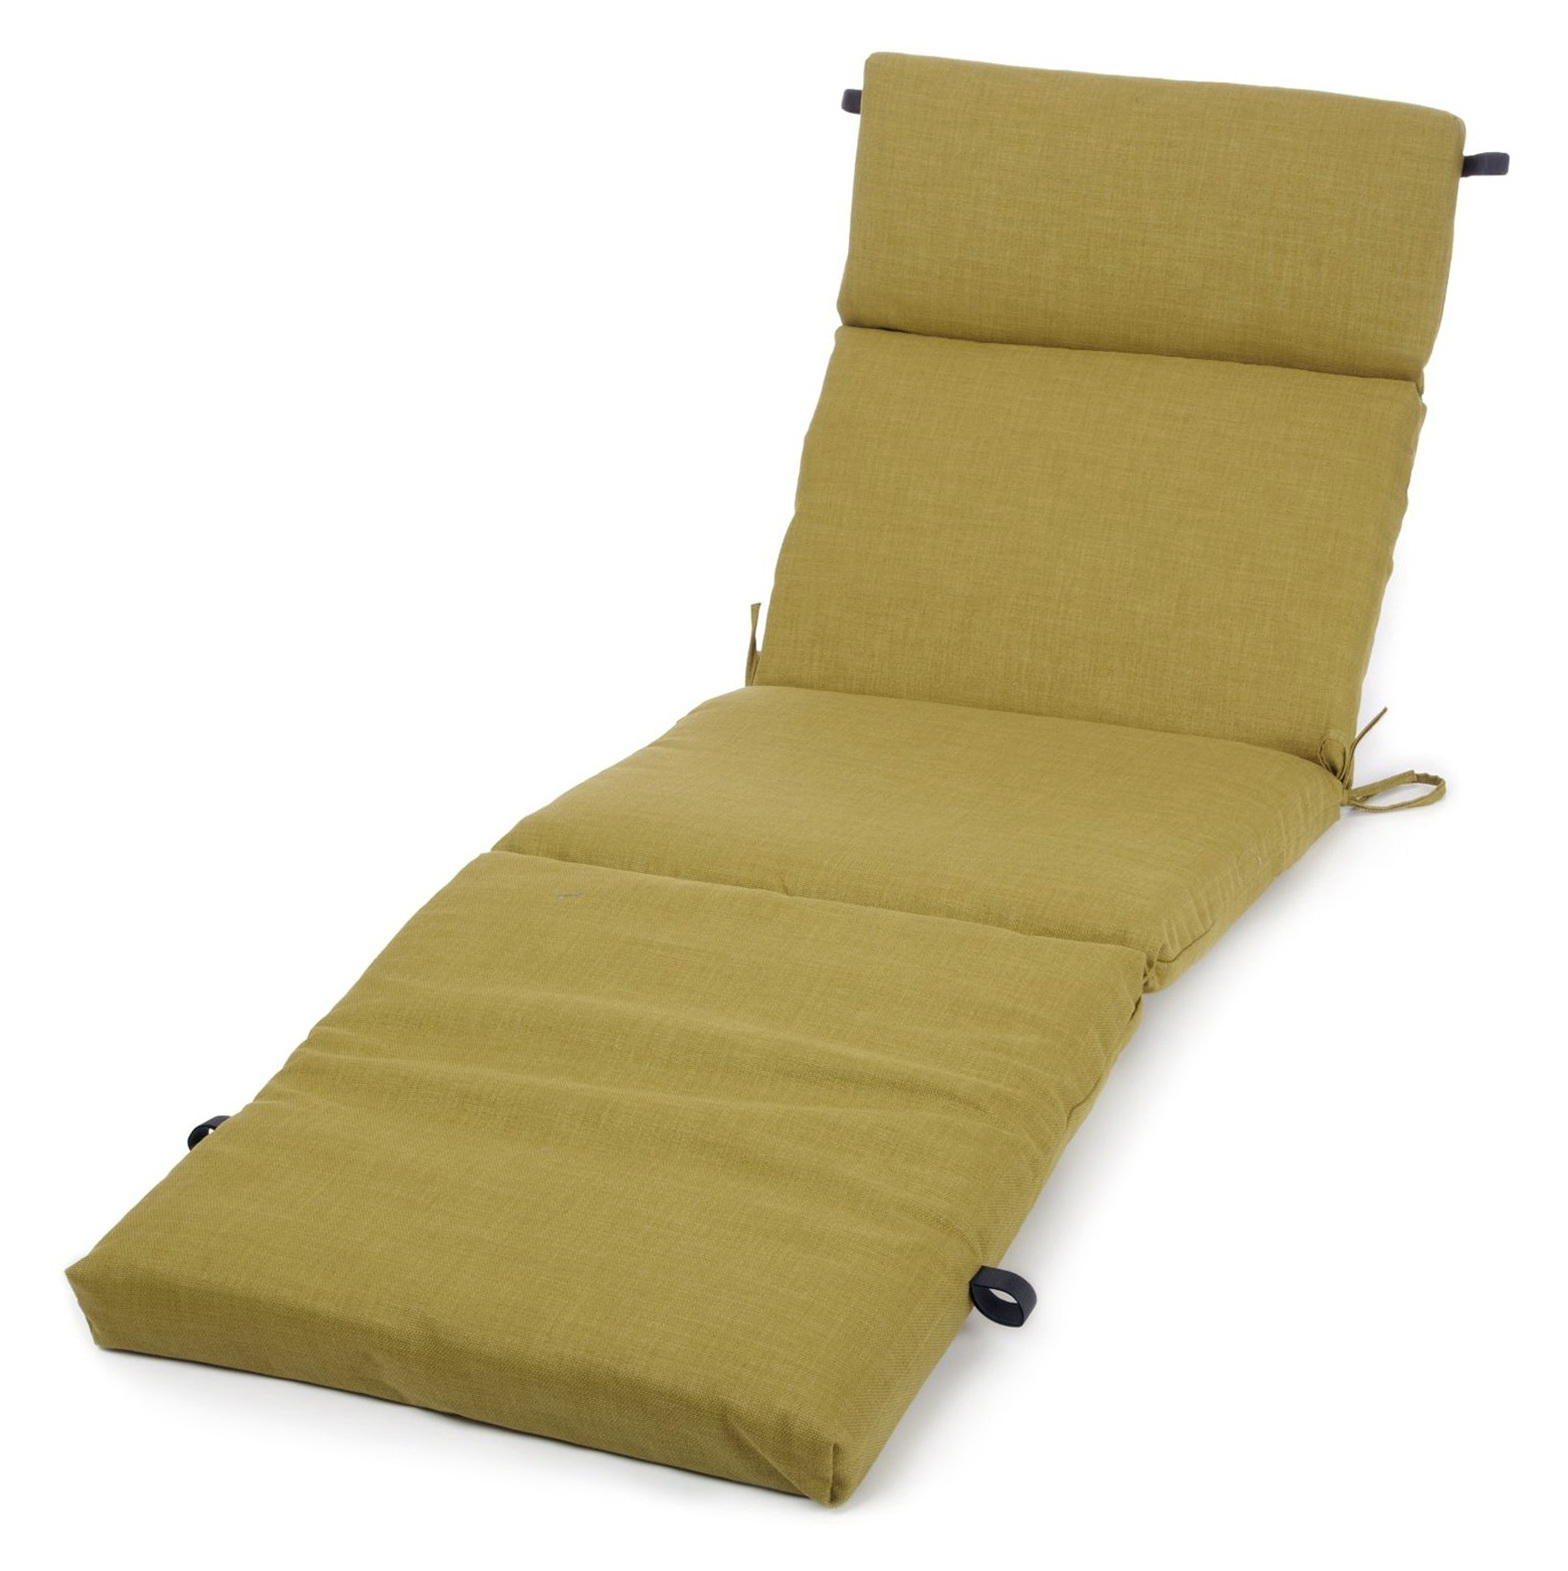 Outdoor chaise lounge cushions home design ideas for Chaise cushion clearance